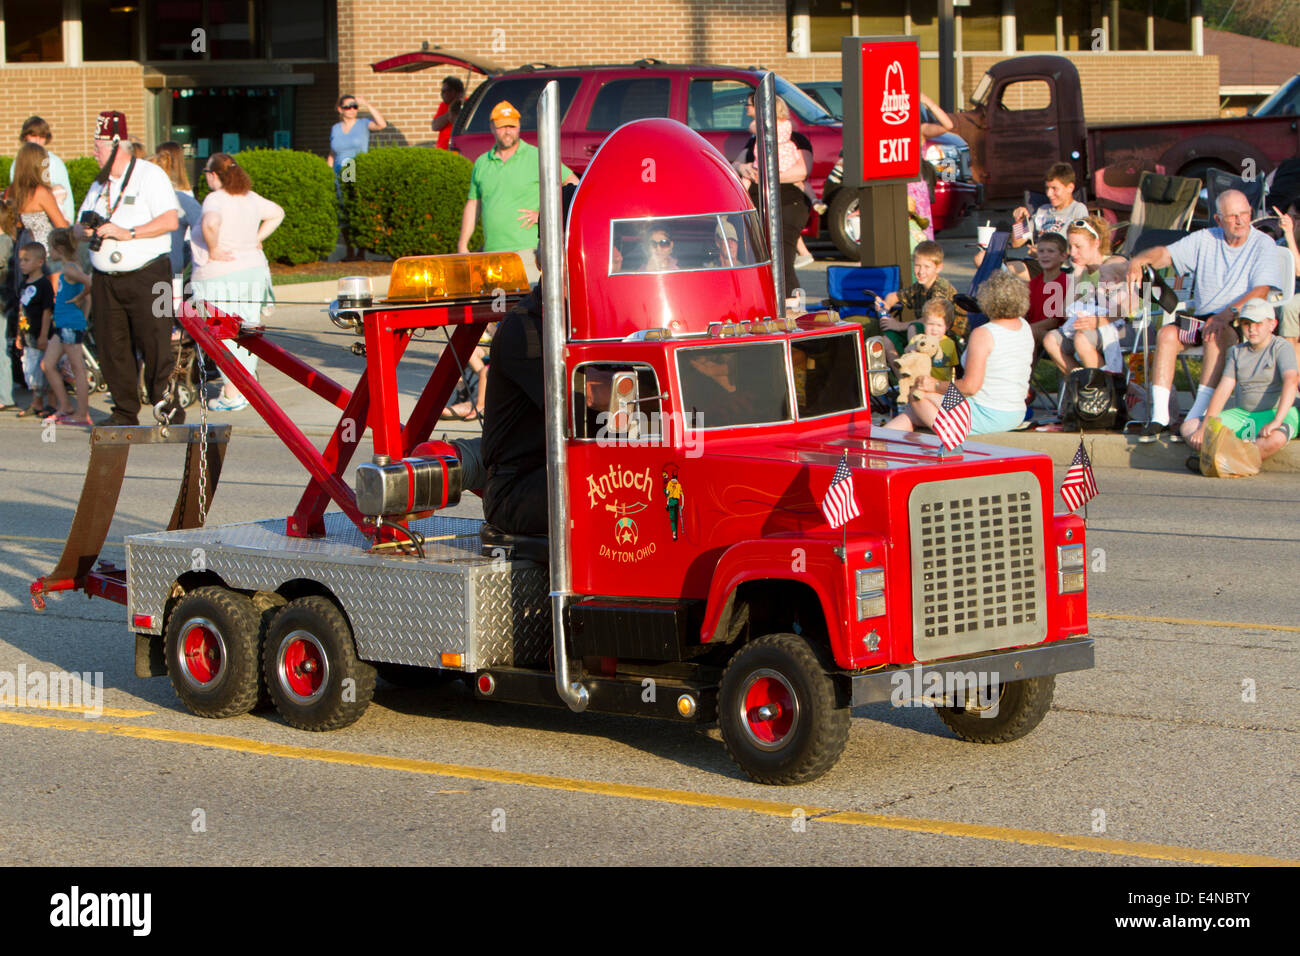 Miniature tow truck in a parade used by the shriners for their performances